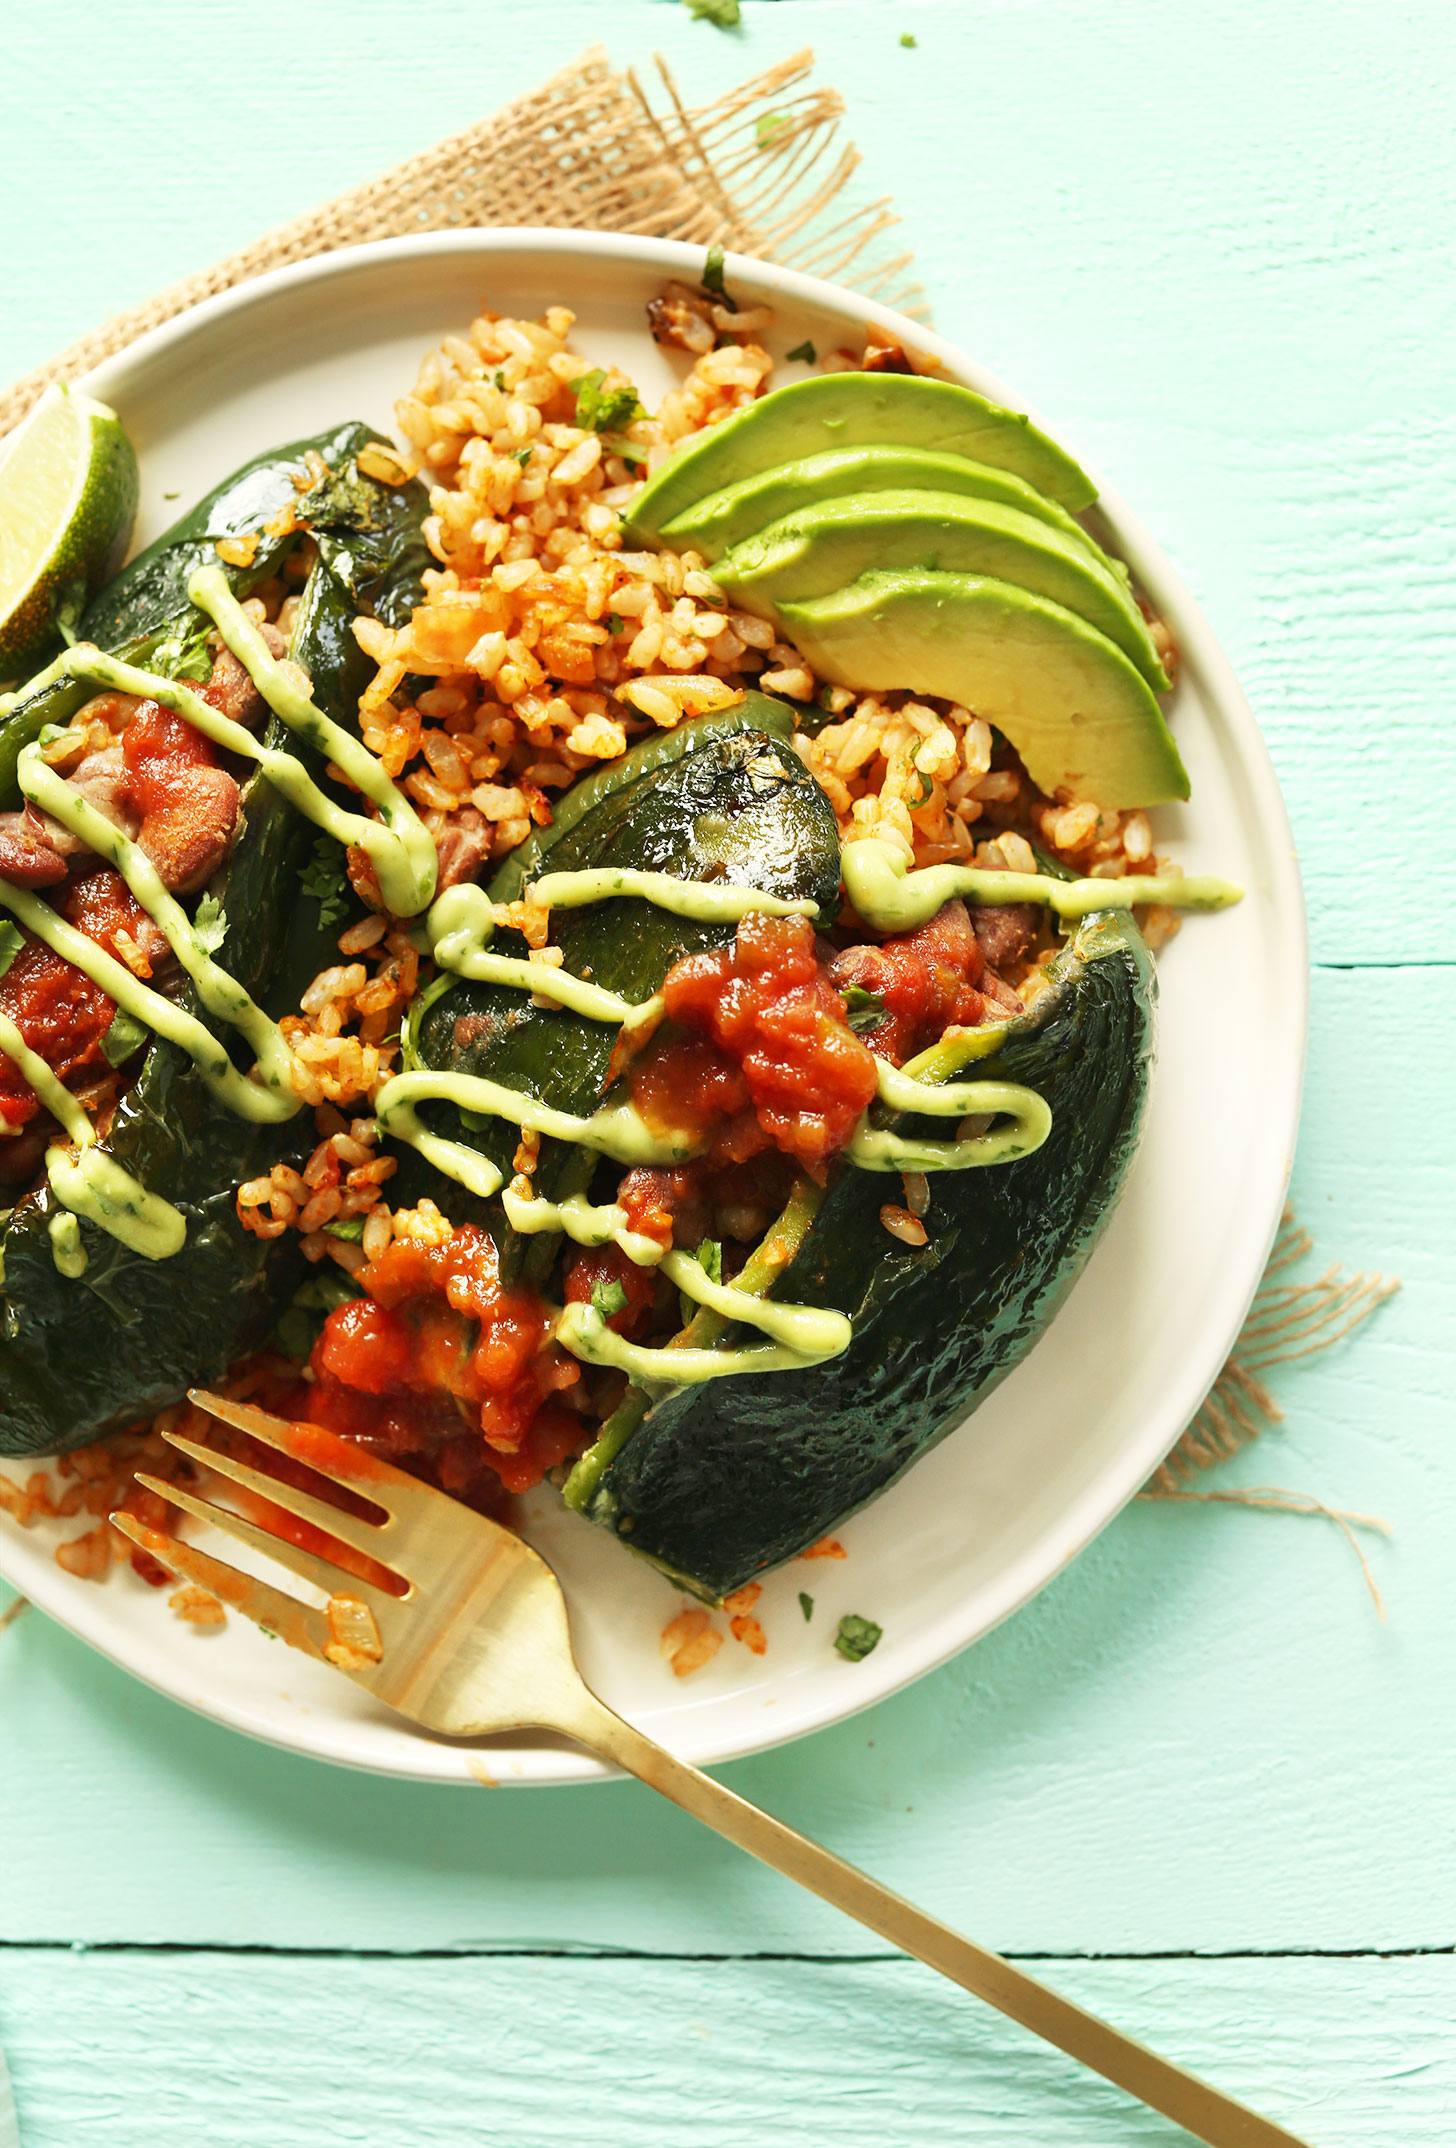 A plate of Vegan Mexican Stuffed Poblano Peppers drizzled with creamy avocado cilantro dressing